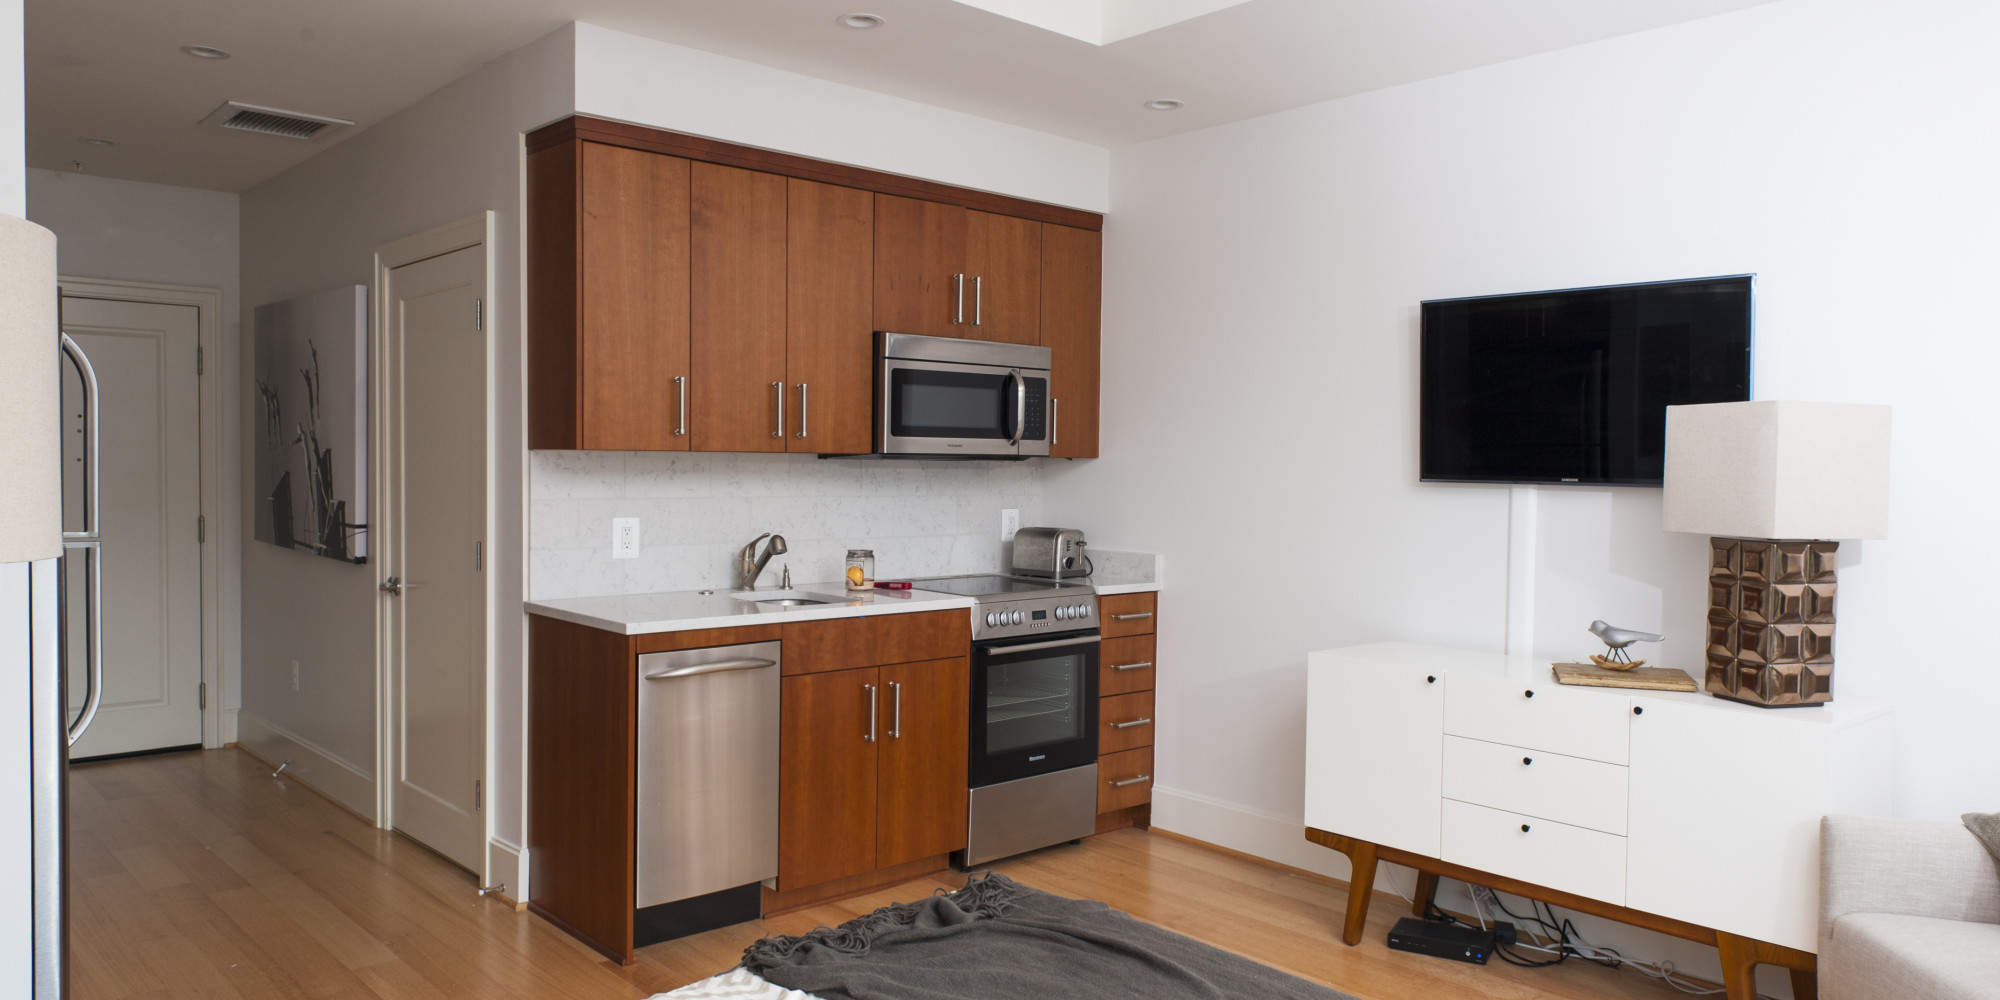 Micro Appartement Big Ideas For Micro Living Trending In North America